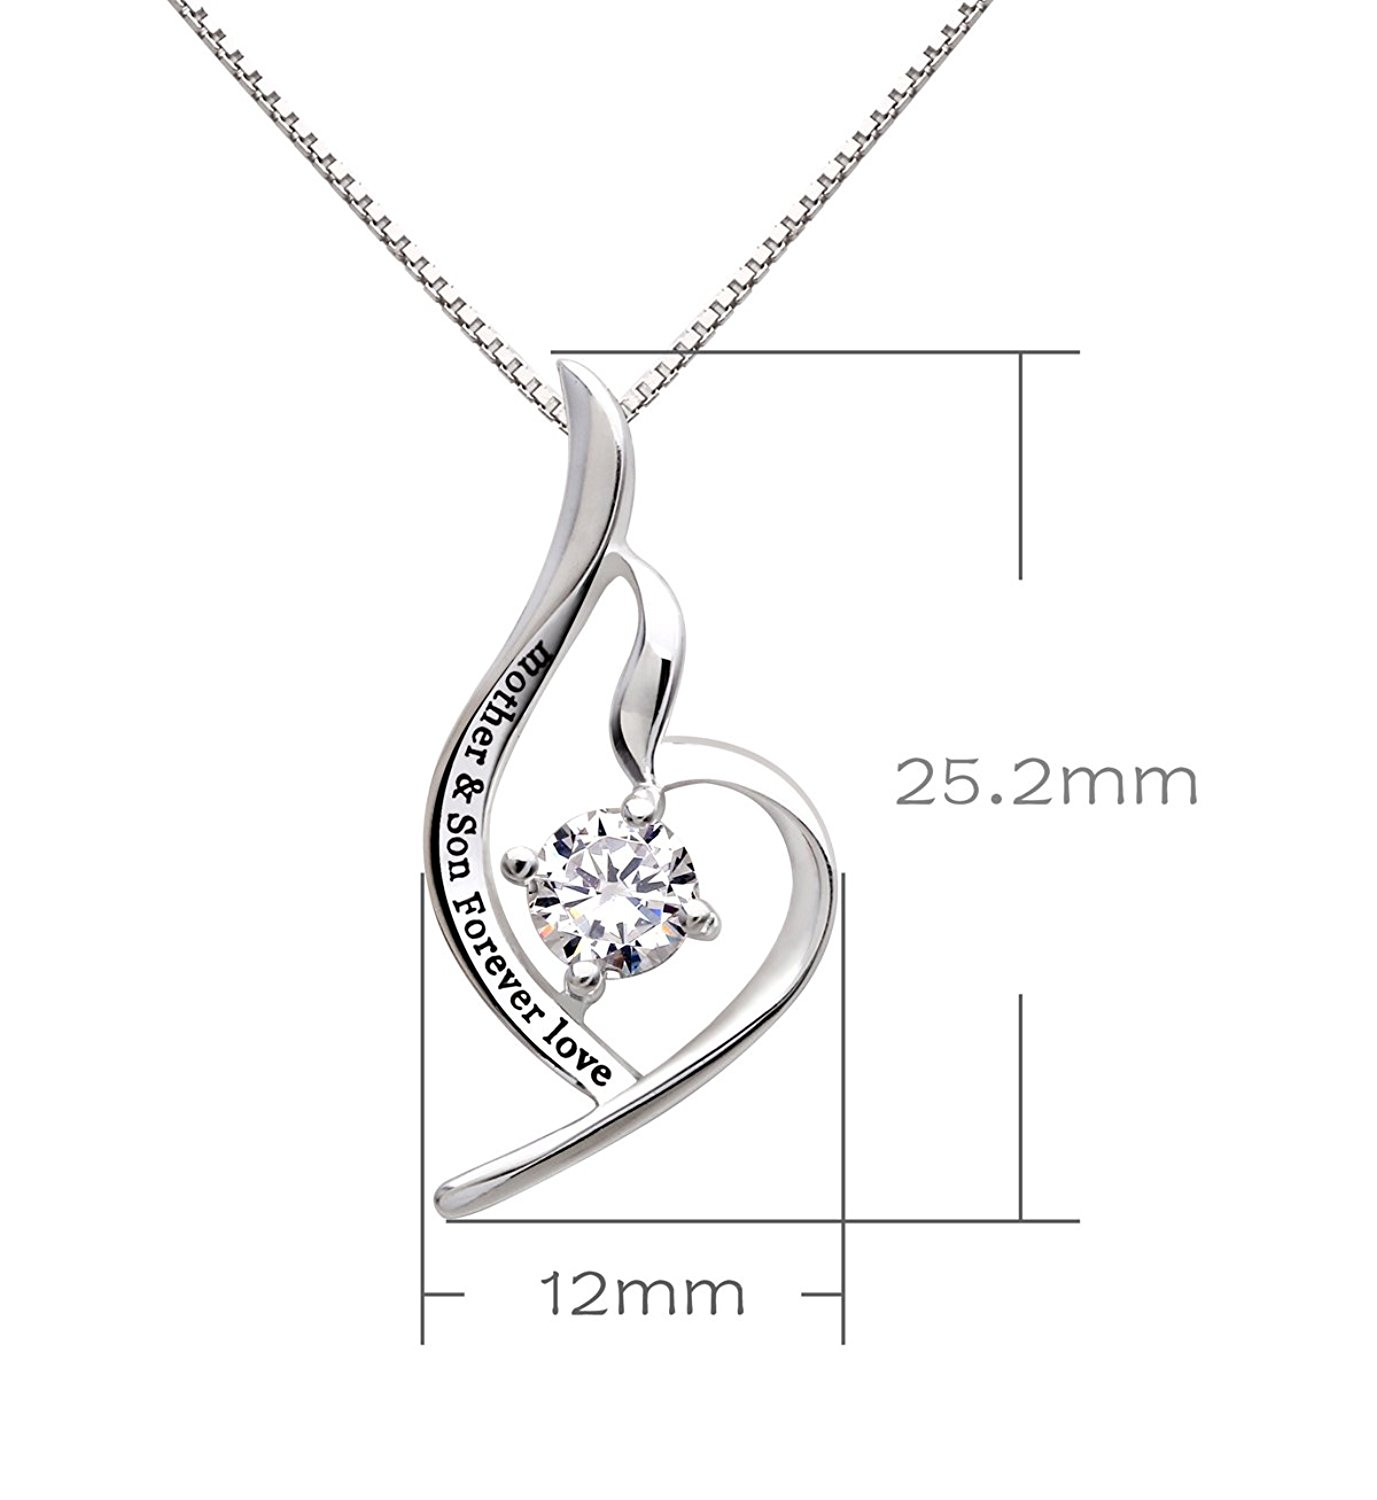 Alov jewelry sterling silver mother son forever love pendant alov jewelry sterling silver mother son forever love pendant necklace aloadofball Image collections